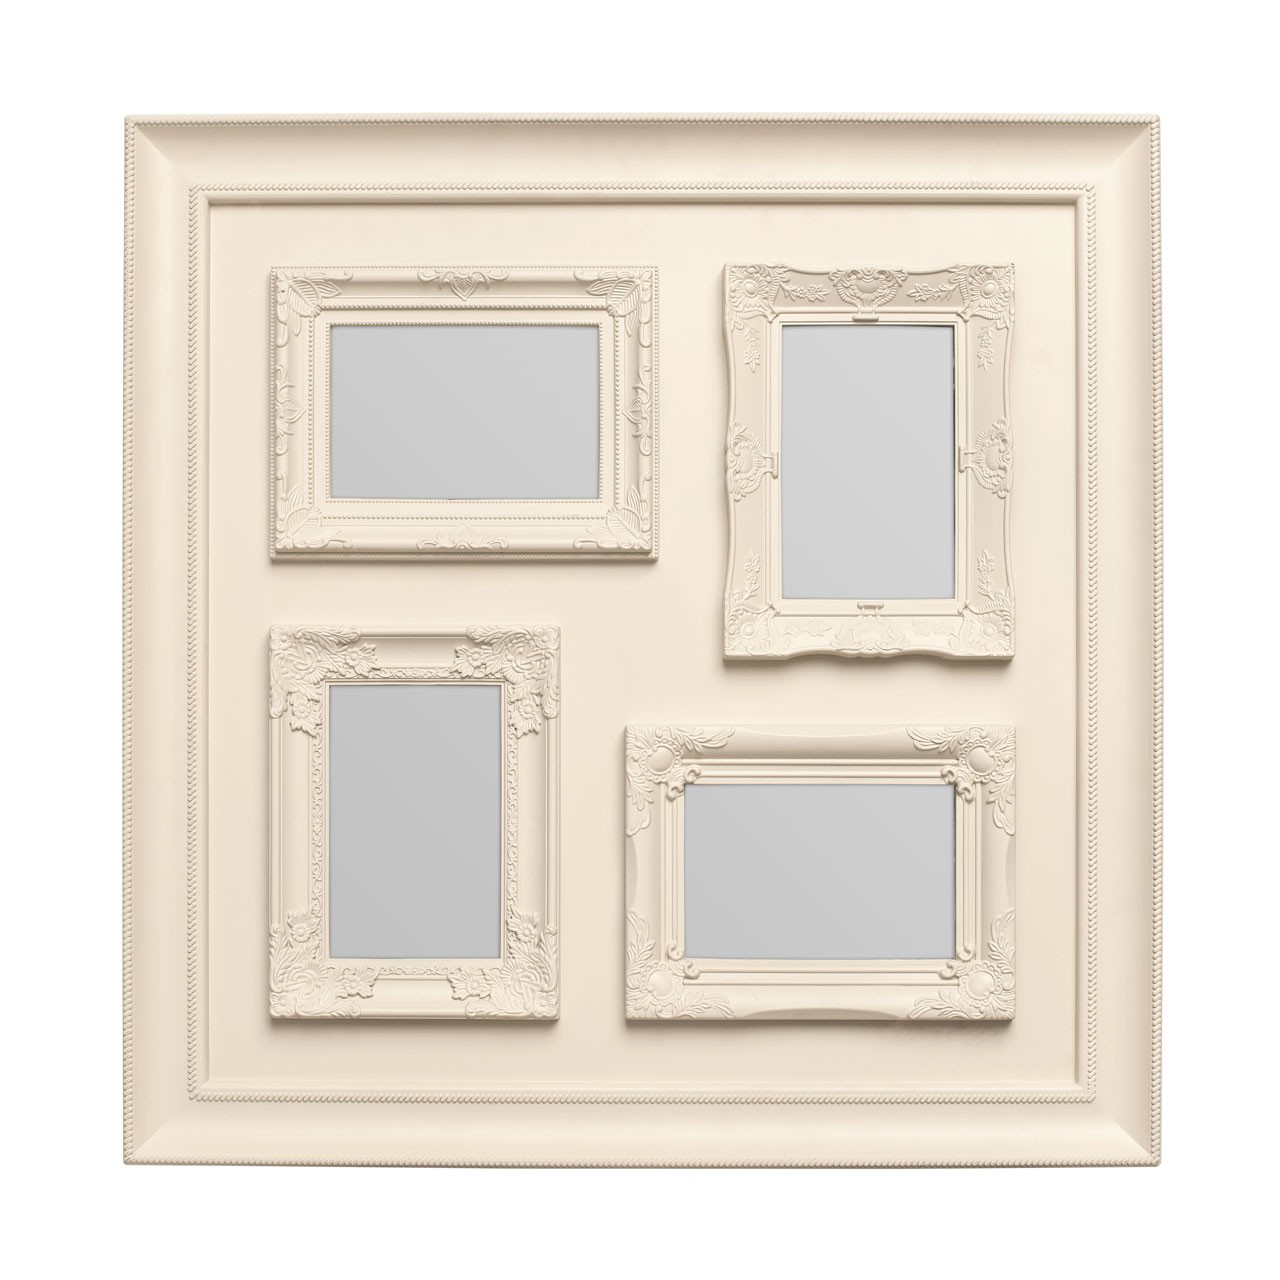 "Prime Furnishing 4 Photos Plastic Photo Frame, 4 x 6"" - Cream"